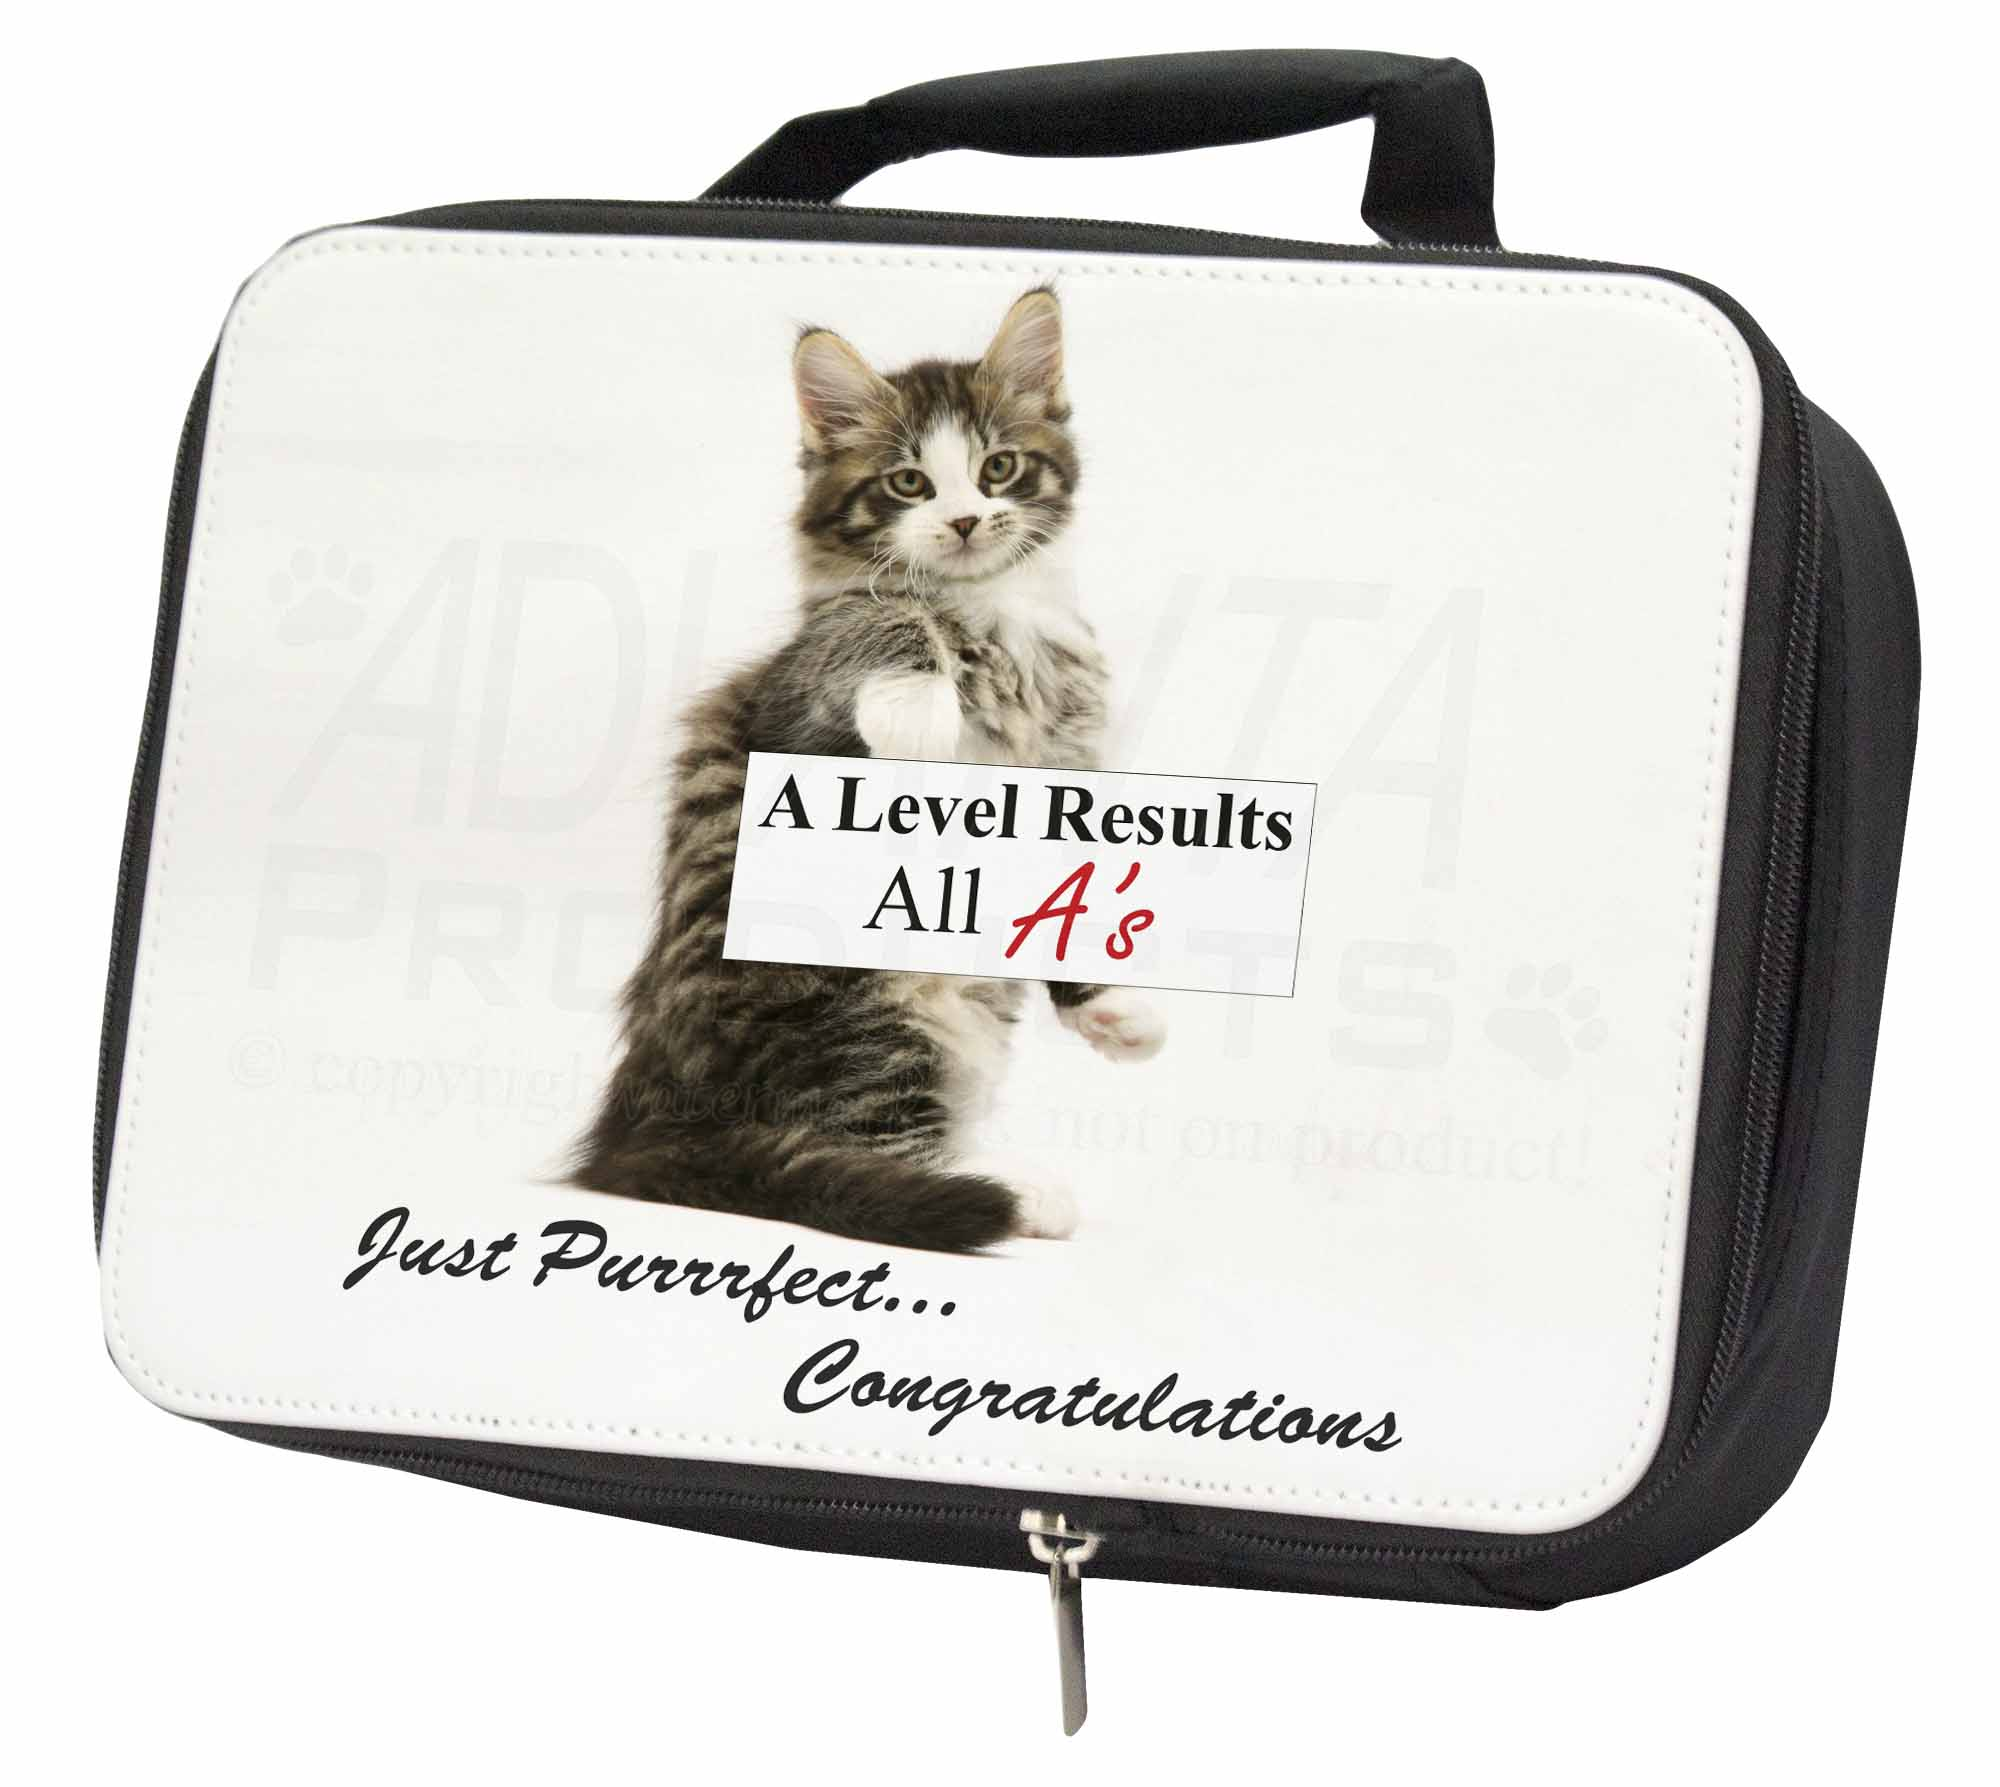 100% Vero A Level 'congratulations' Cat Black Insulated School Lunch Box Bag, Ac-188al1lbb